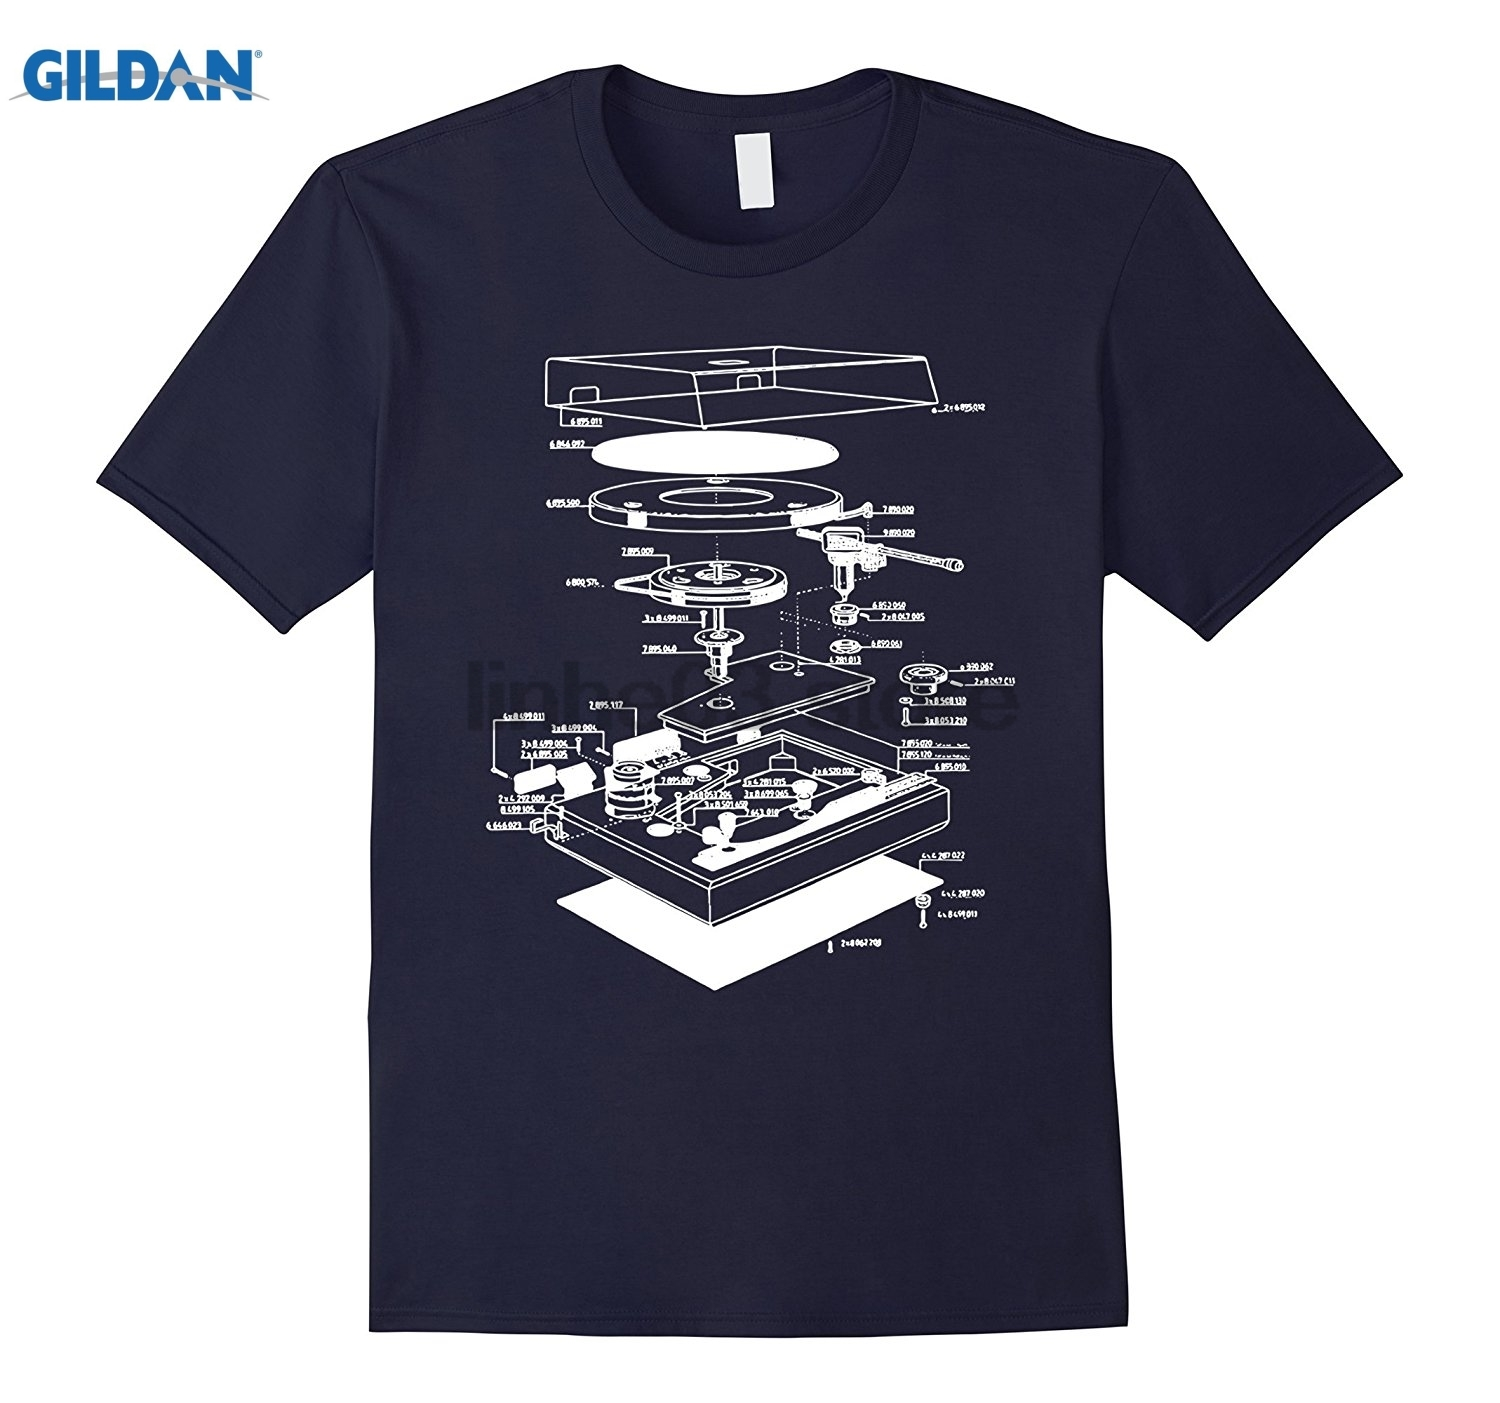 GILDAN Turn table shirt - dj shirt - turn table schematic dress T-shirt sunglasses women ...